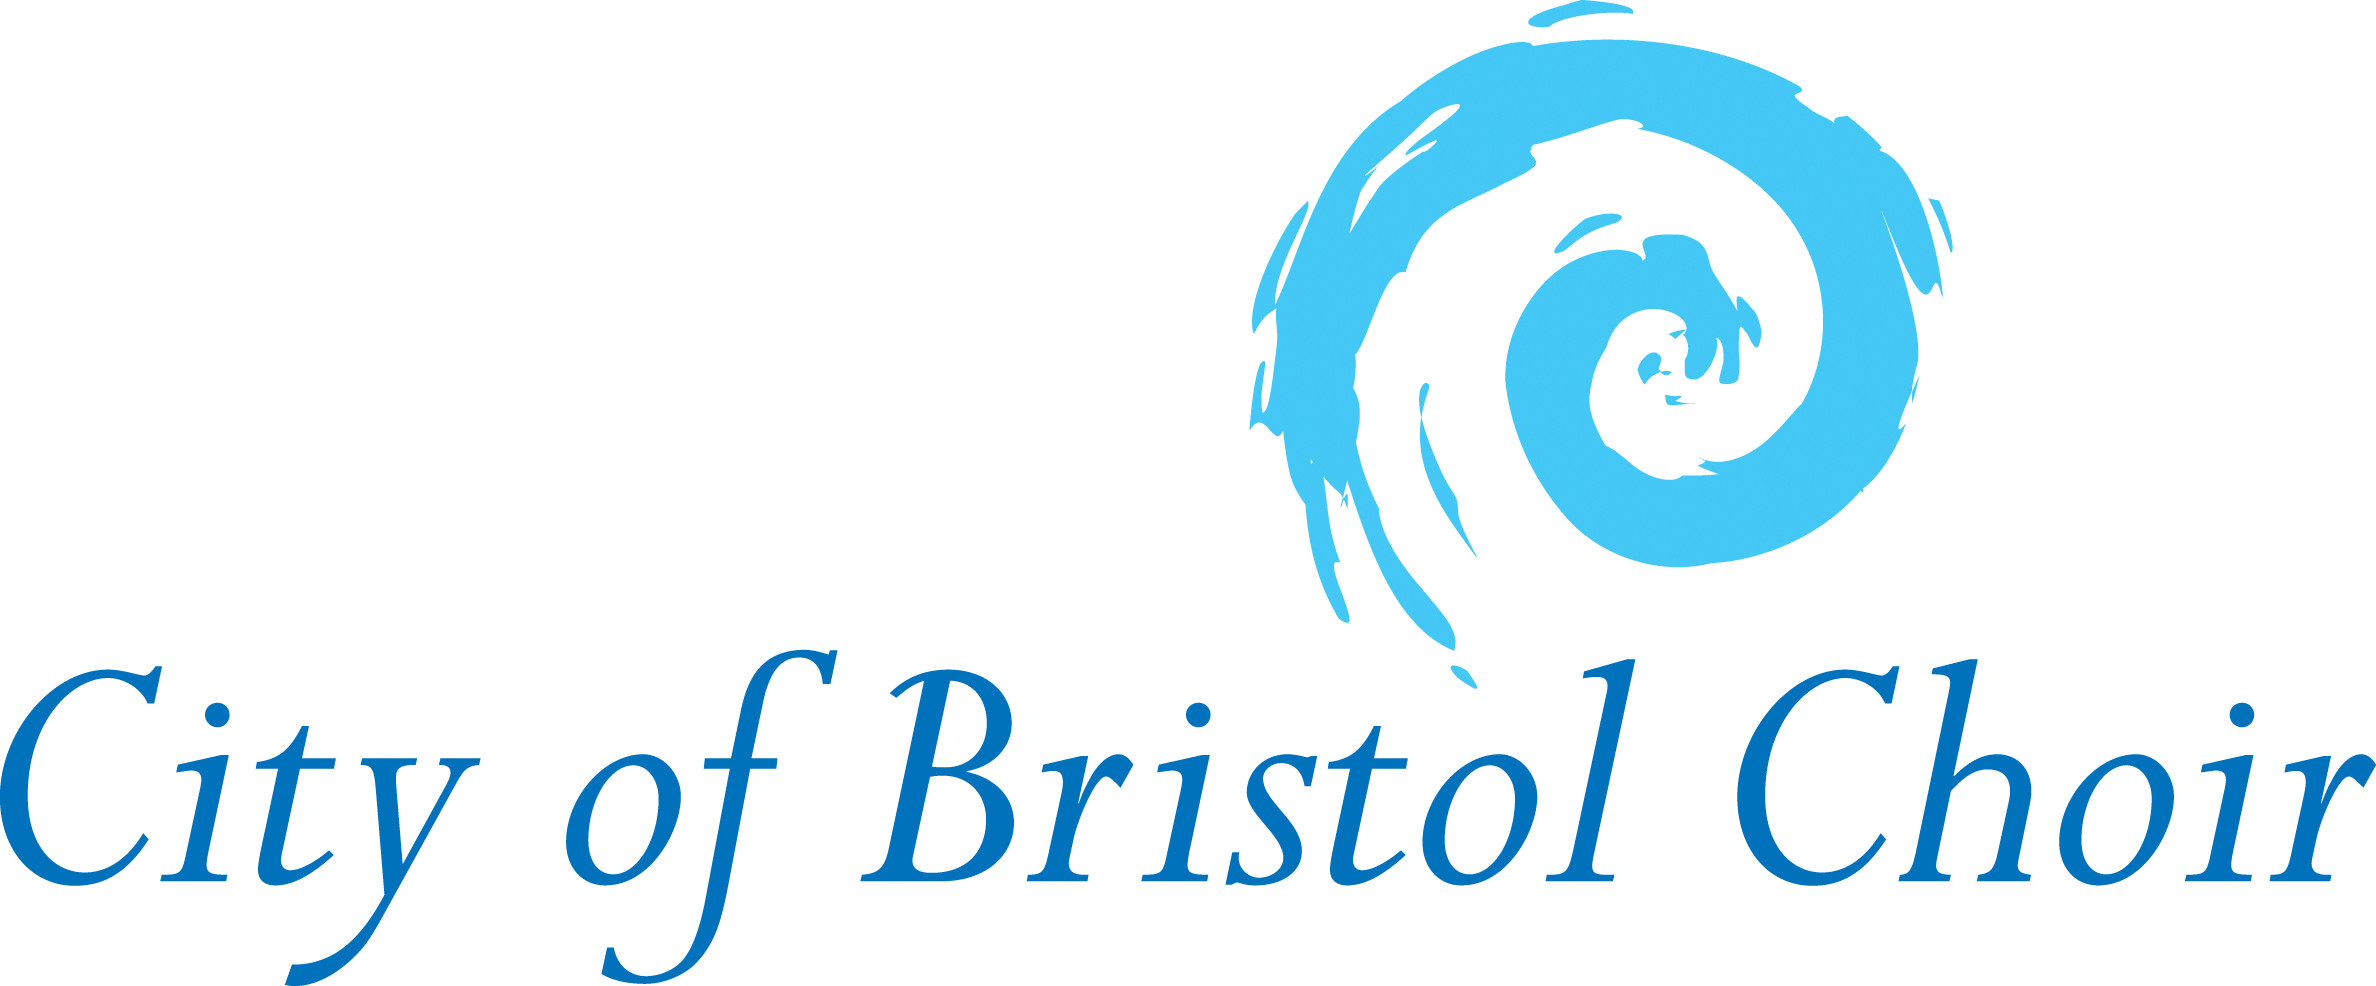 City of Bristol Choir